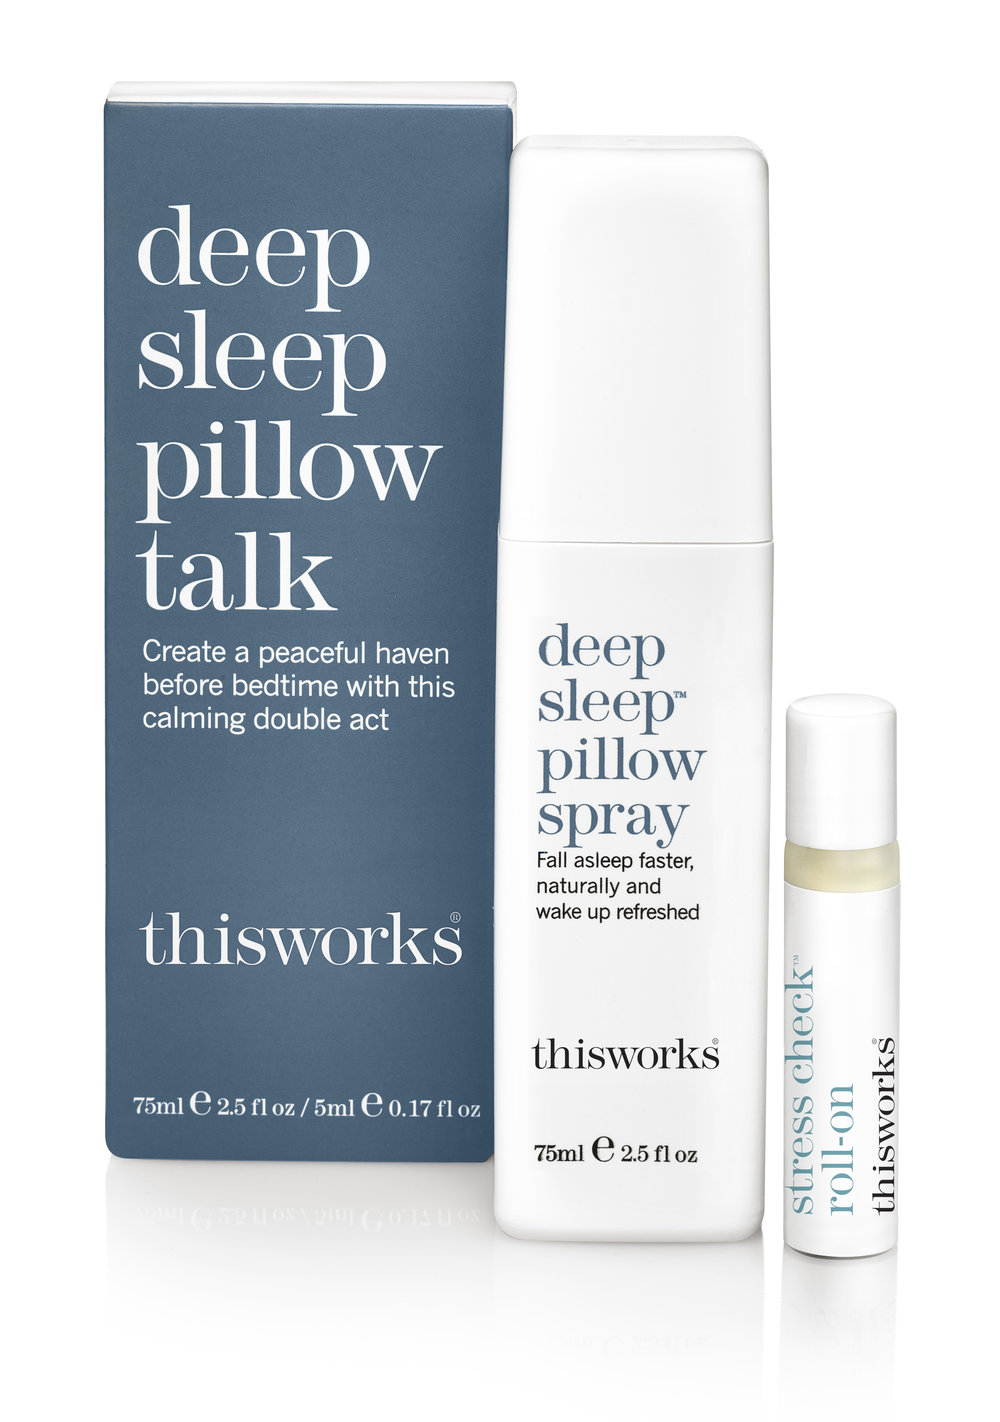 WTWS001035 Deep Sleep Pillow Talk Set With Box.jpg